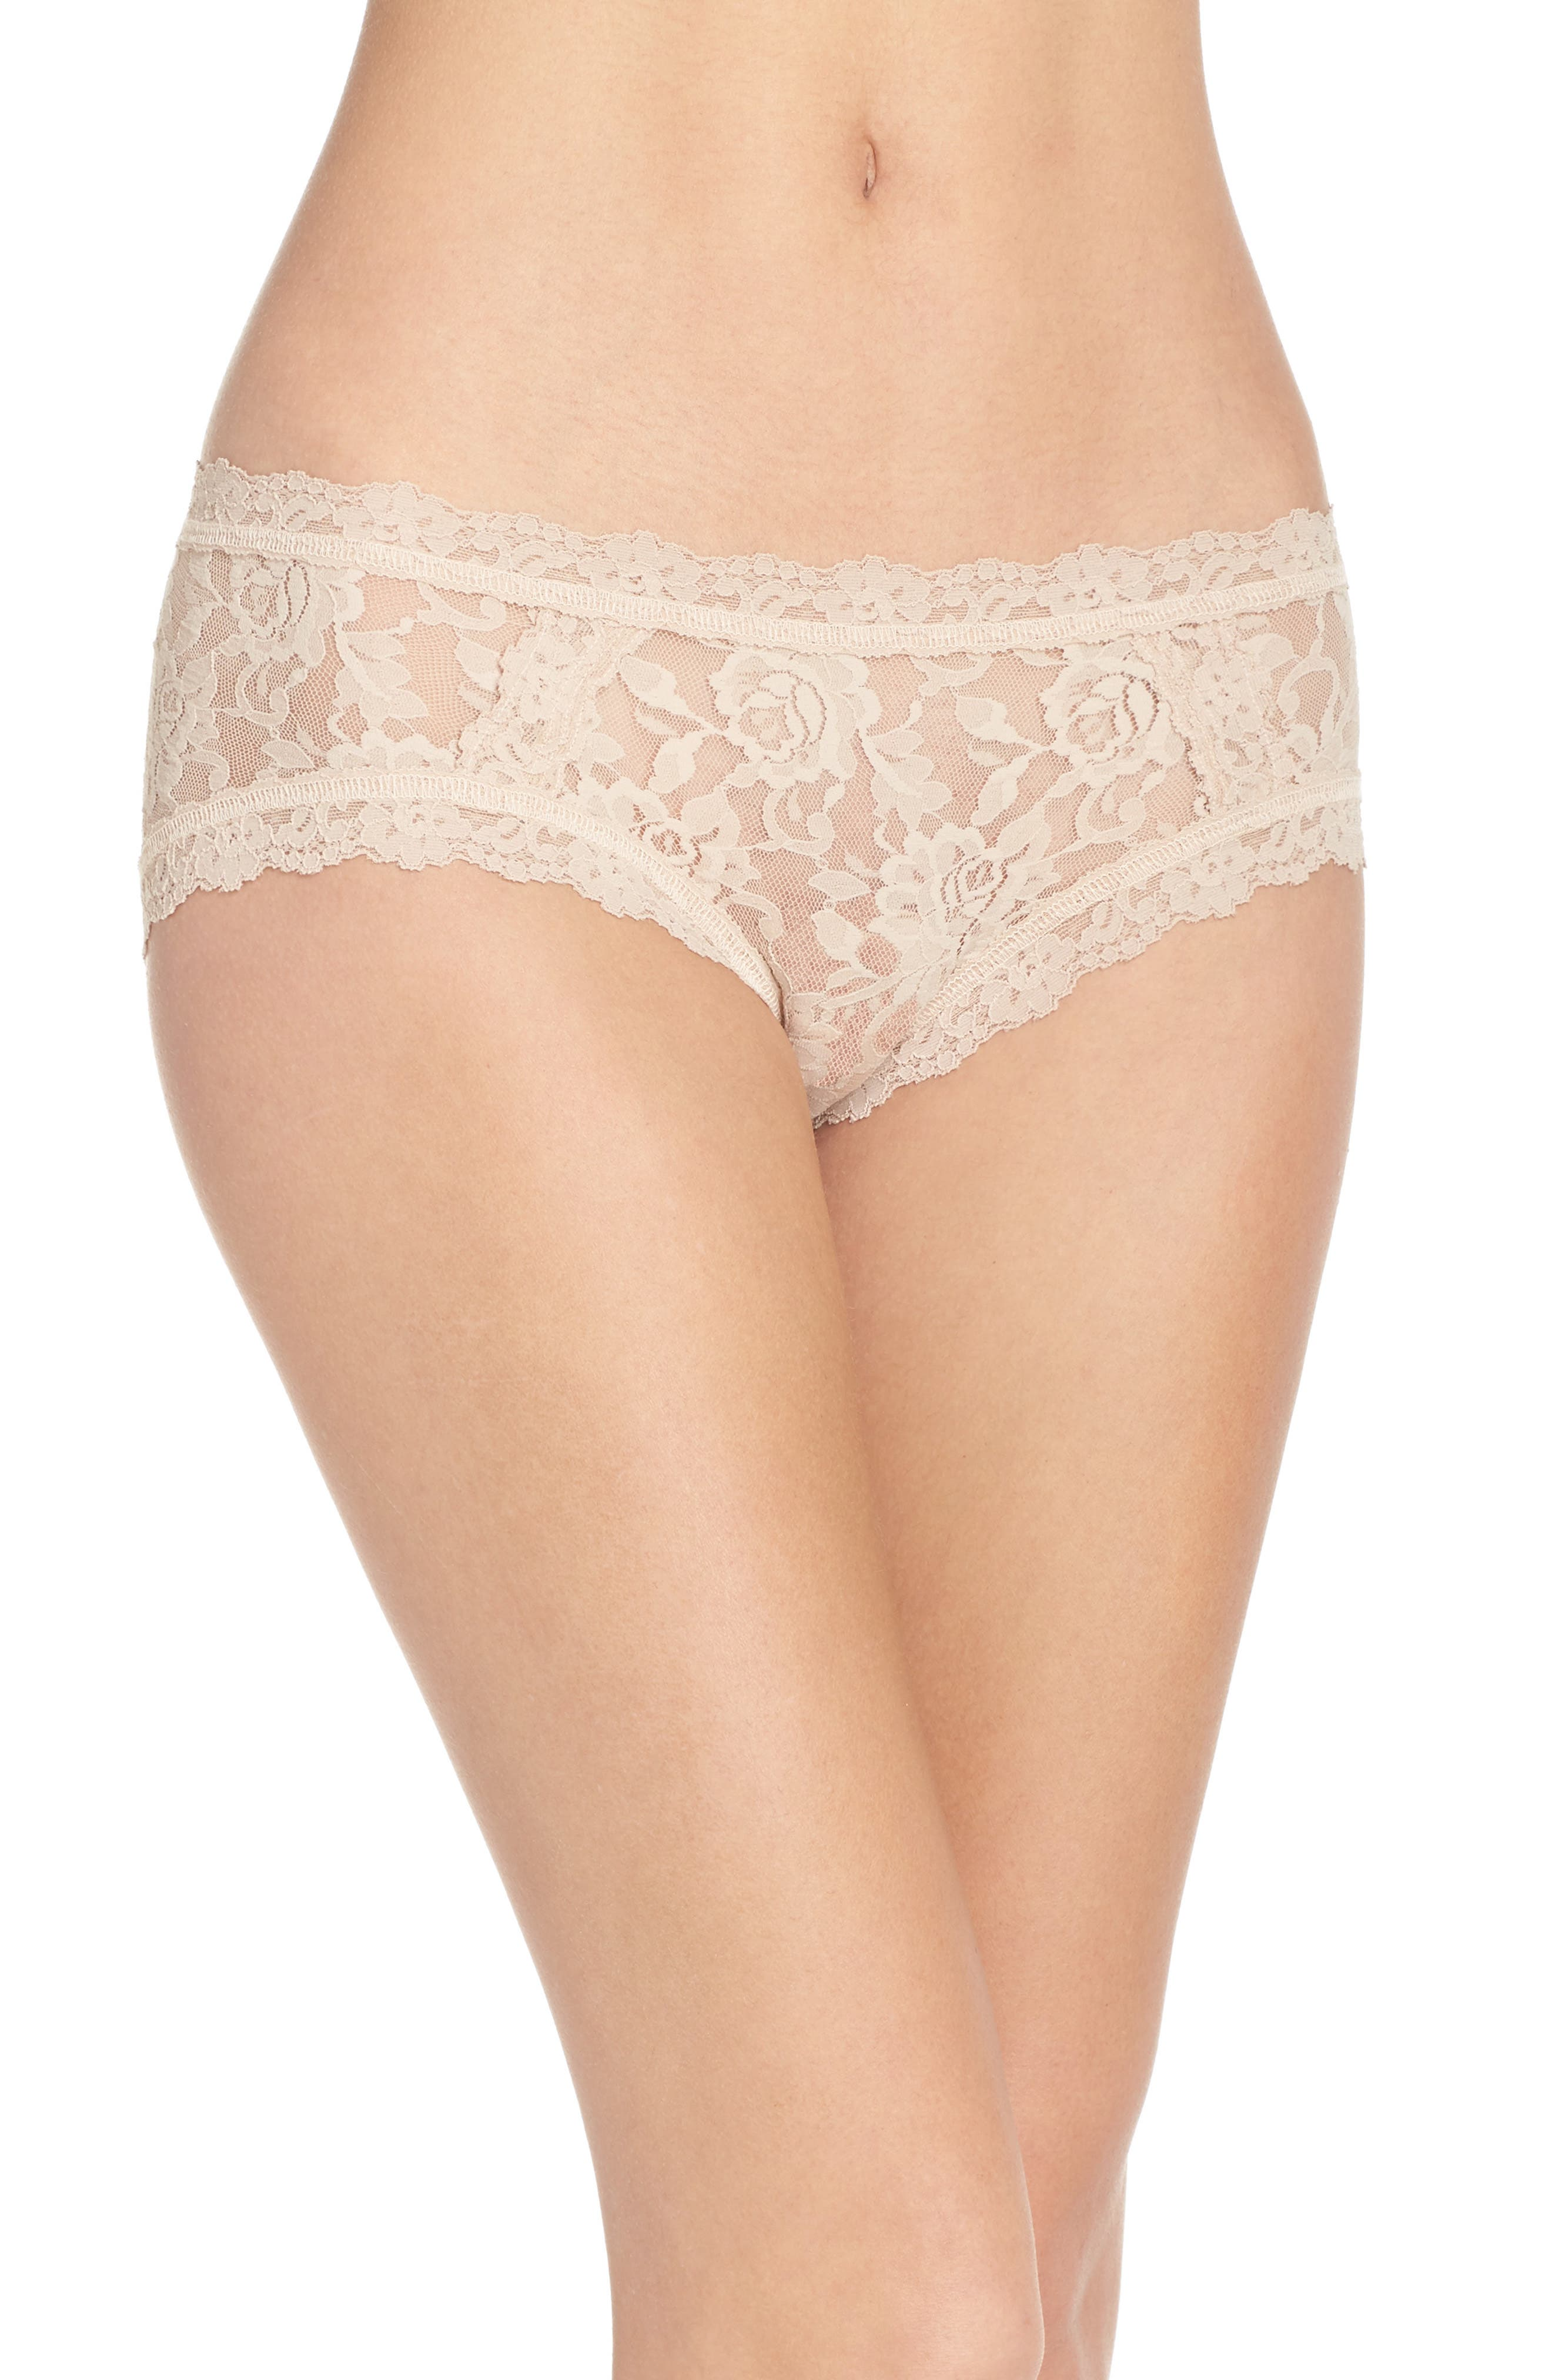 Floral Stretch Lace Girlkini,                             Main thumbnail 2, color,